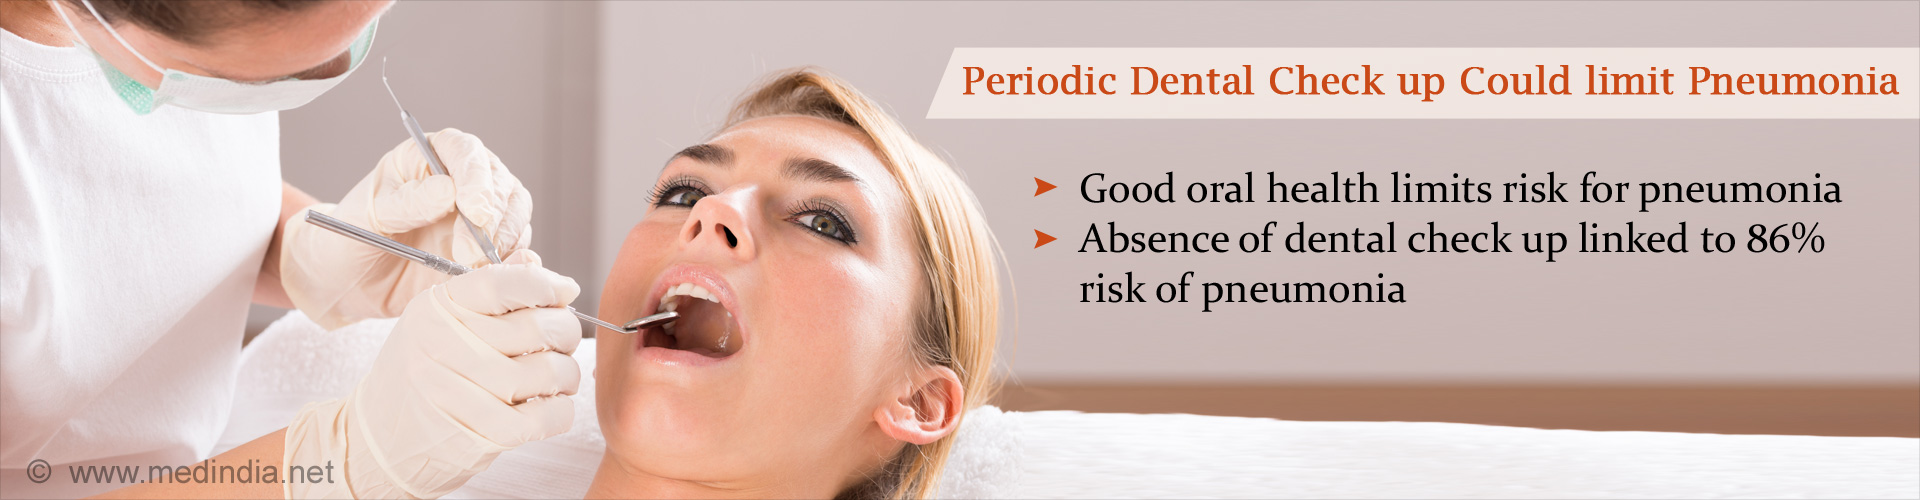 Pneumonia Risk in Patients Who Don�t Visit the Dentist Regularly